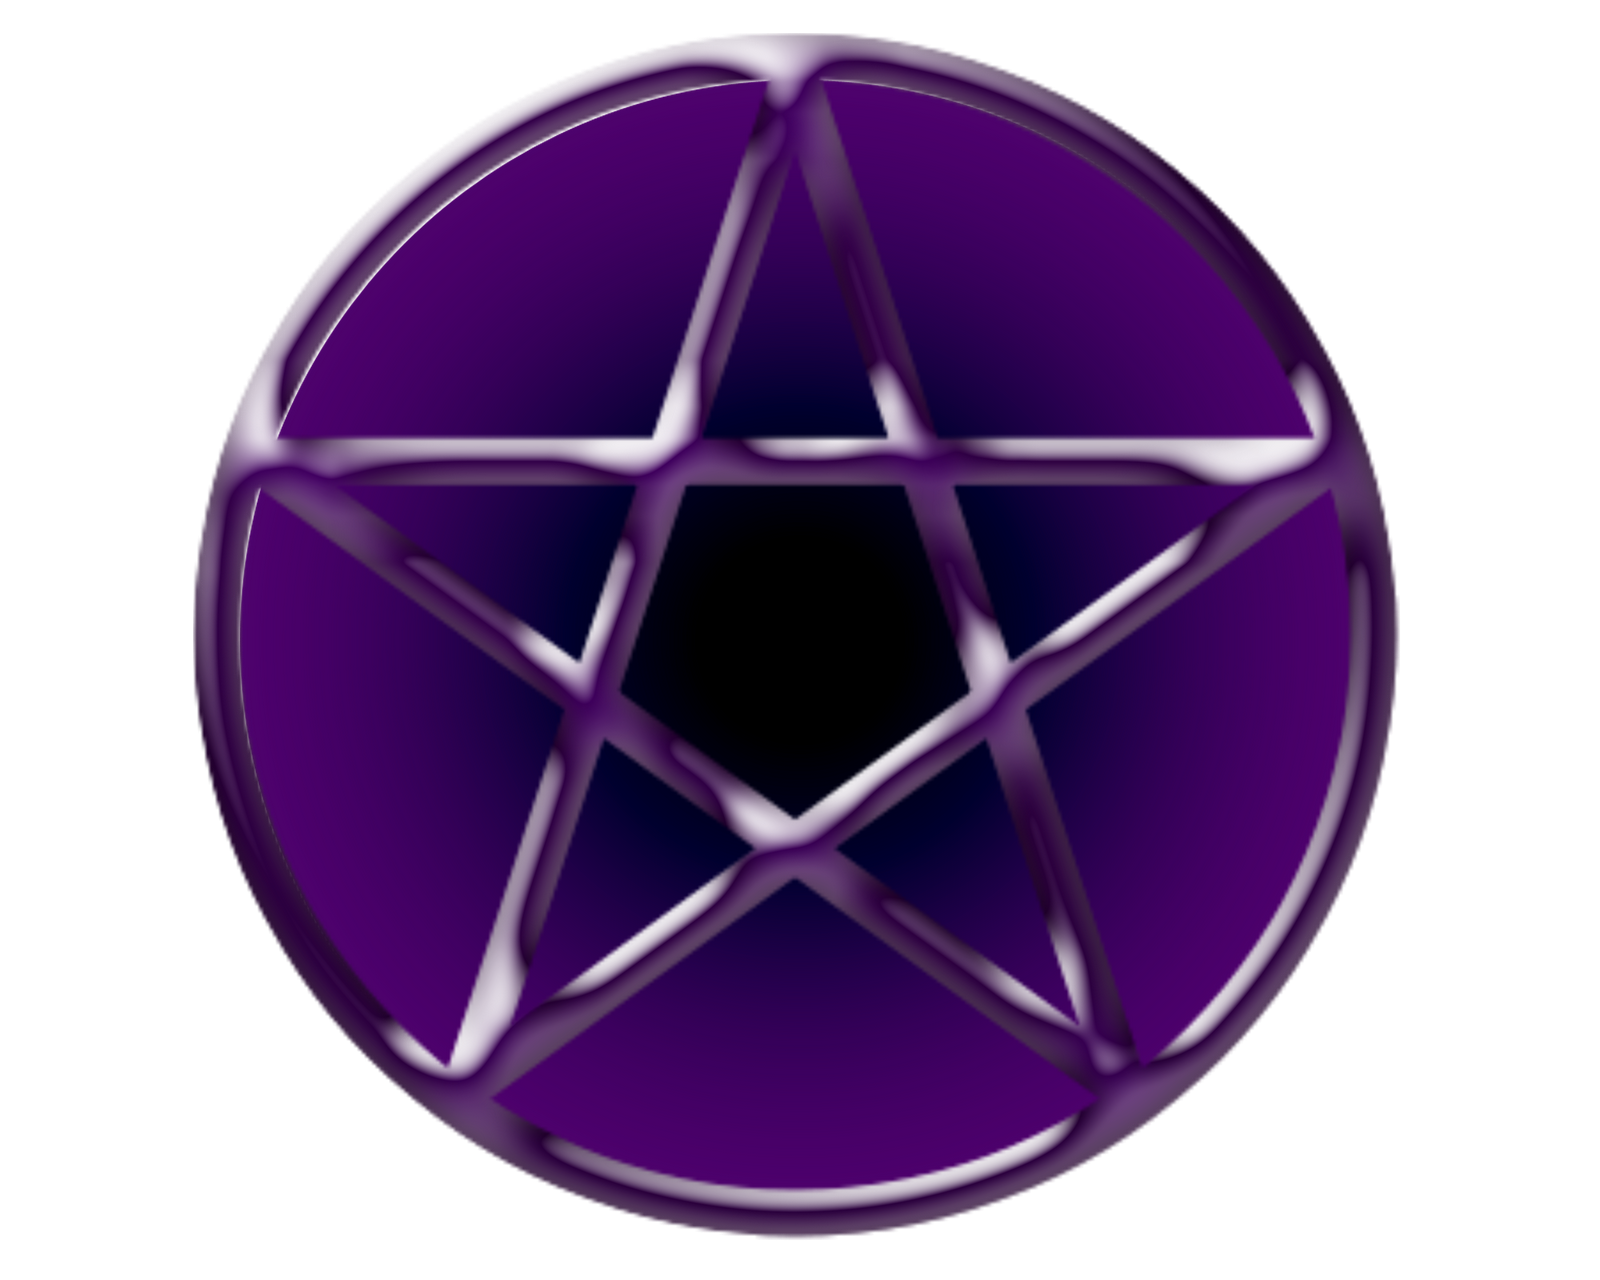 Pentacle transparent magical. Png images all free